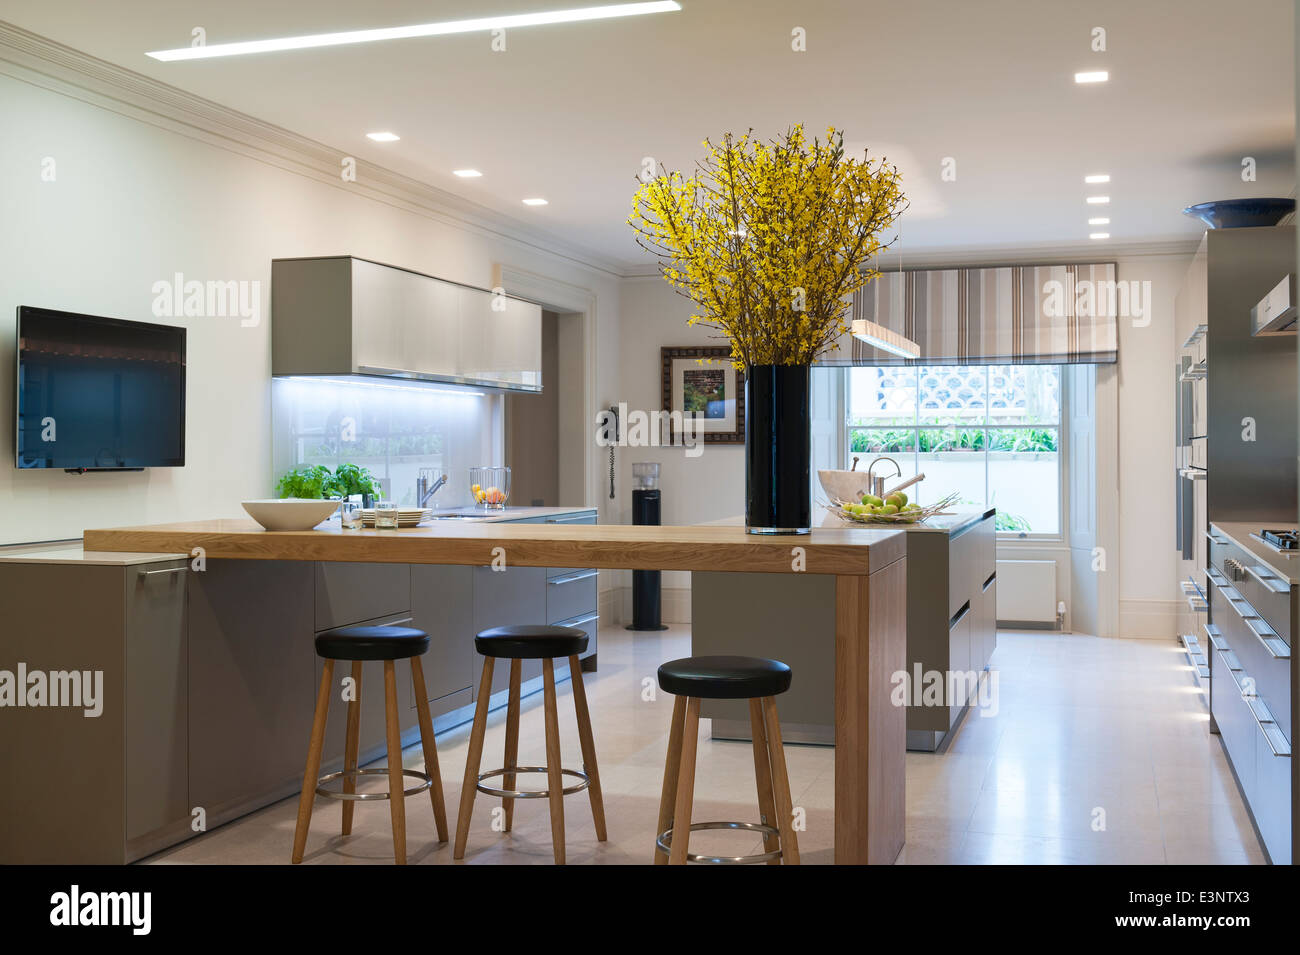 Modern bulthaup kitchen with breakfast bar and stools stock photo